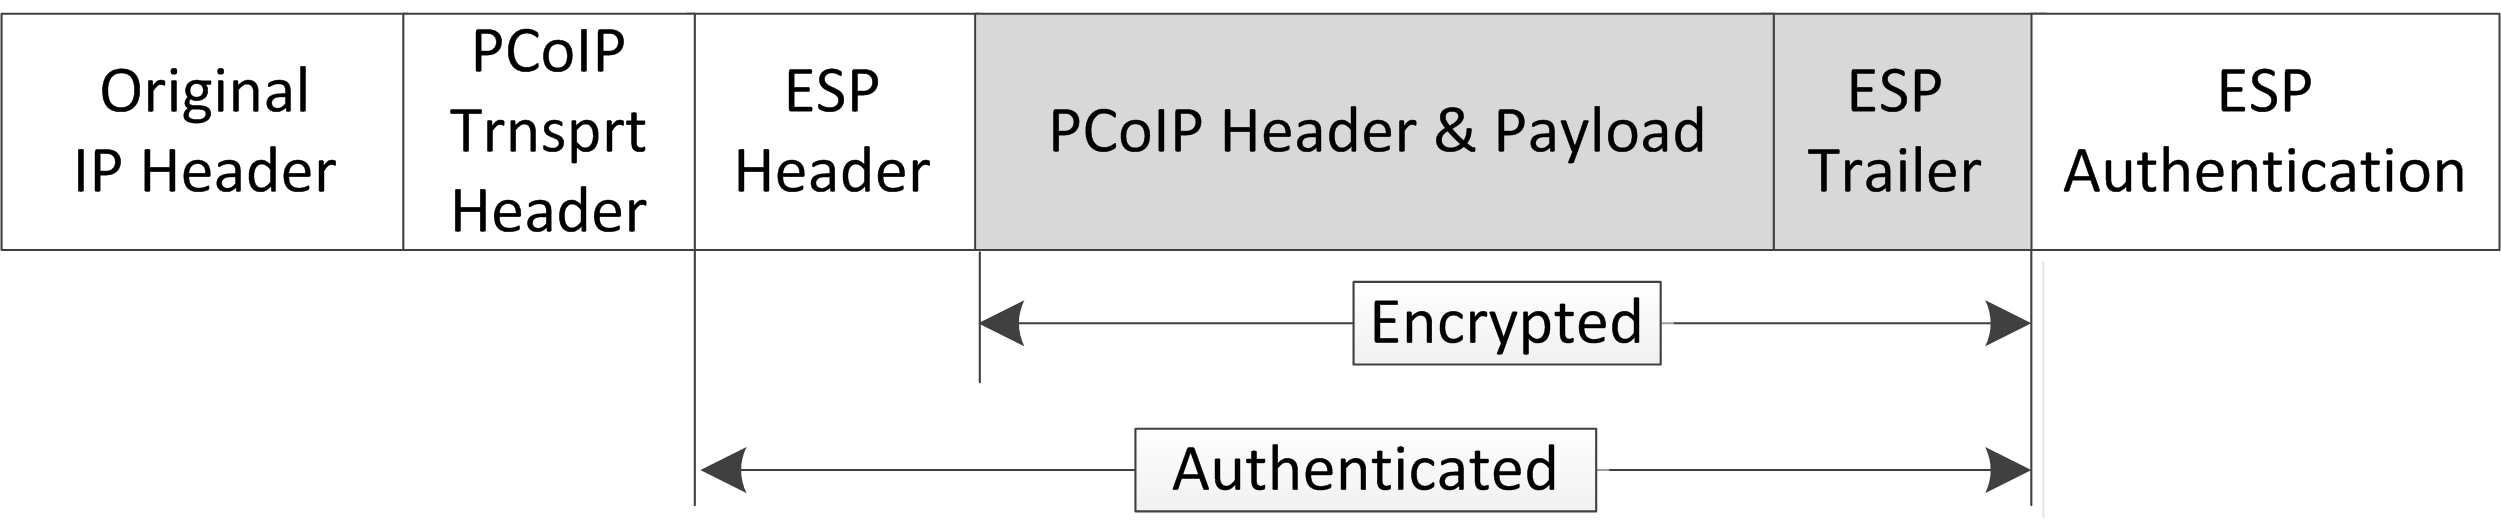 PCoIP Packet Format - PCoIP Zero Client Firmware 6 2